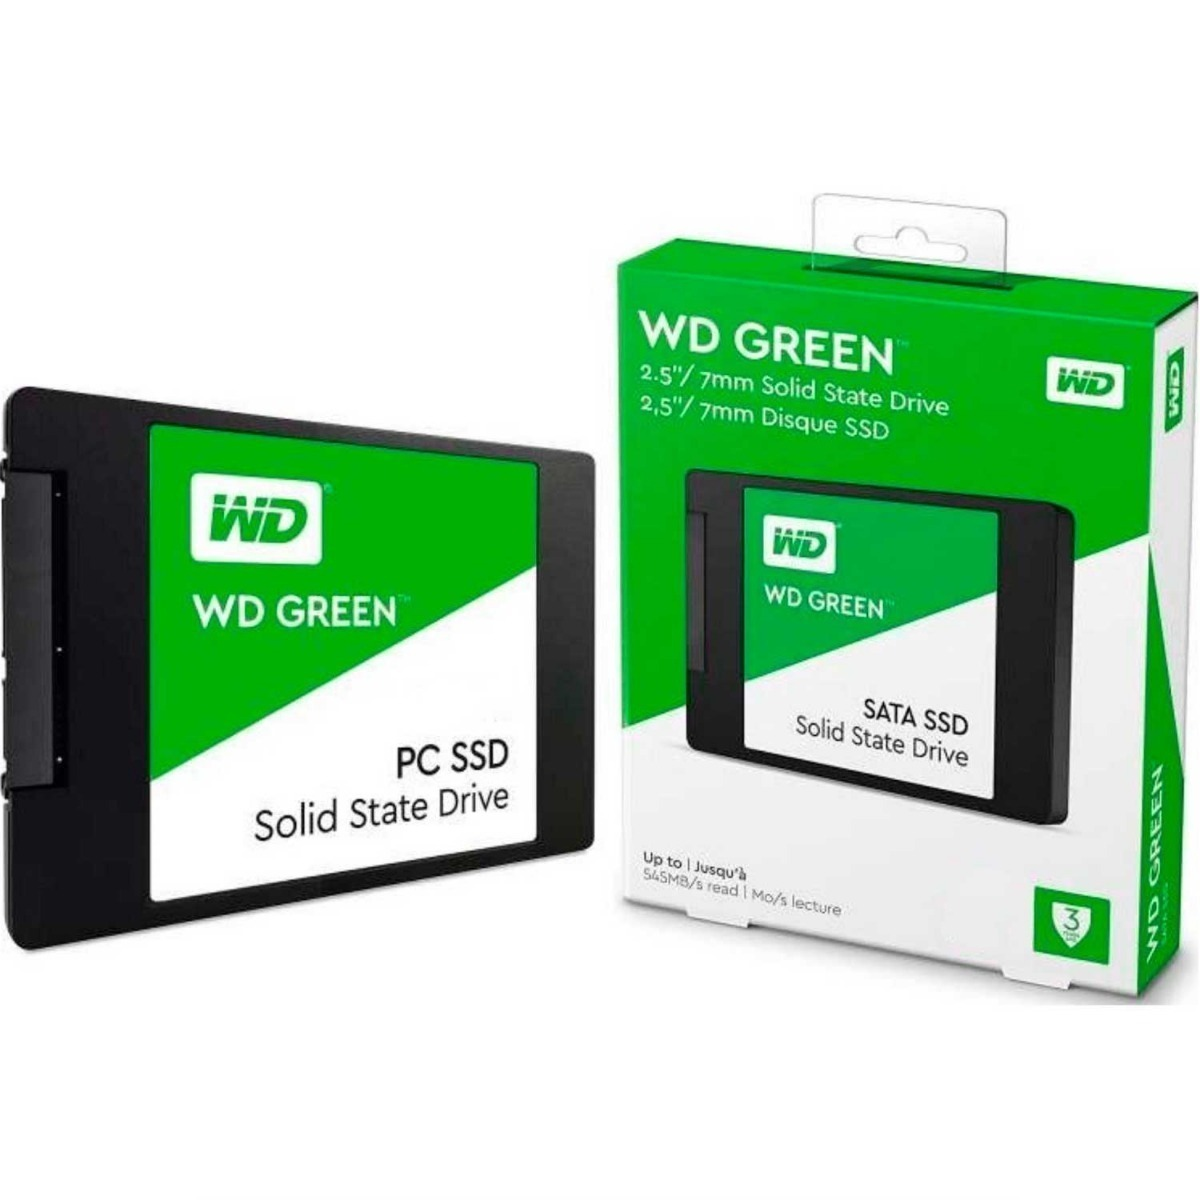 SSD 480 GB WD GREEN